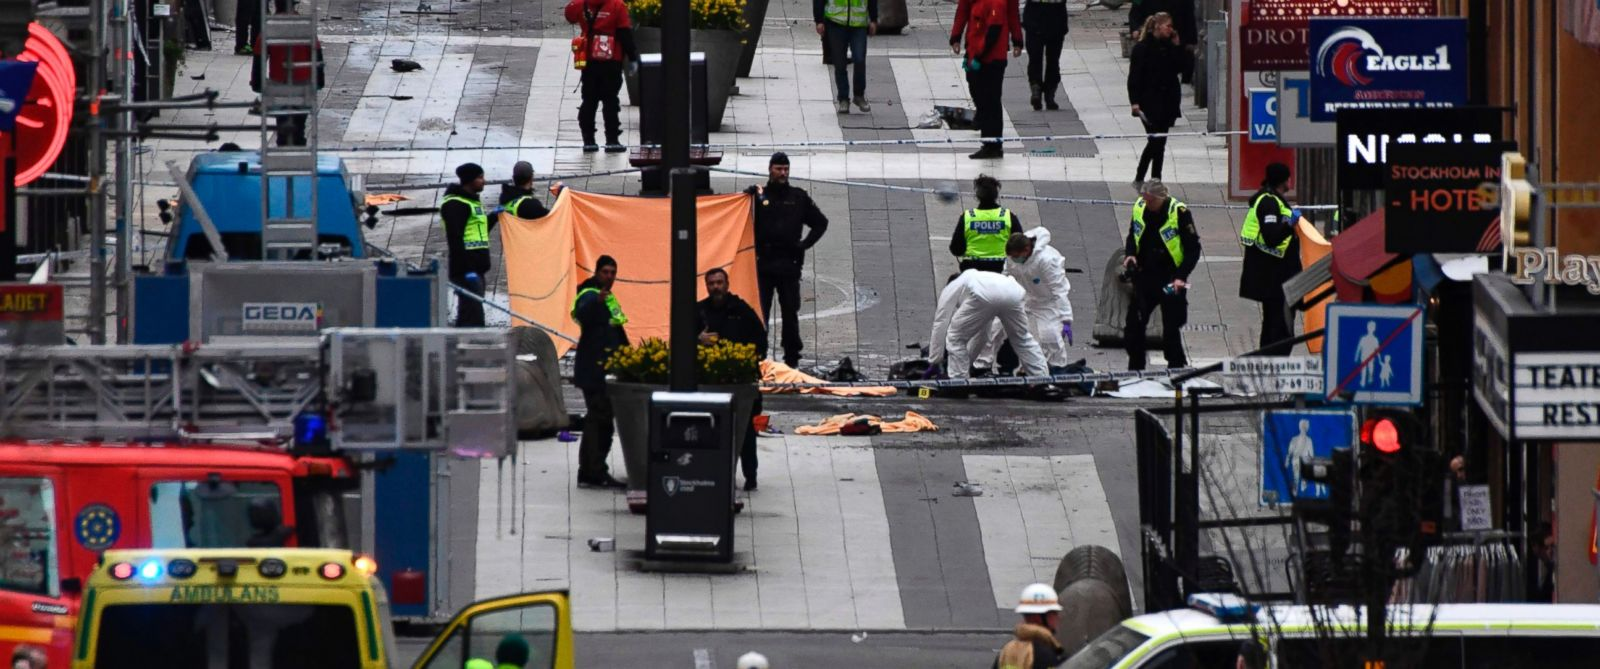 PHOTO: Forensic agents work at the scene where a truck crashed into the Ahlens department store at Drottninggatan in central Stockholm, April 7, 2017.